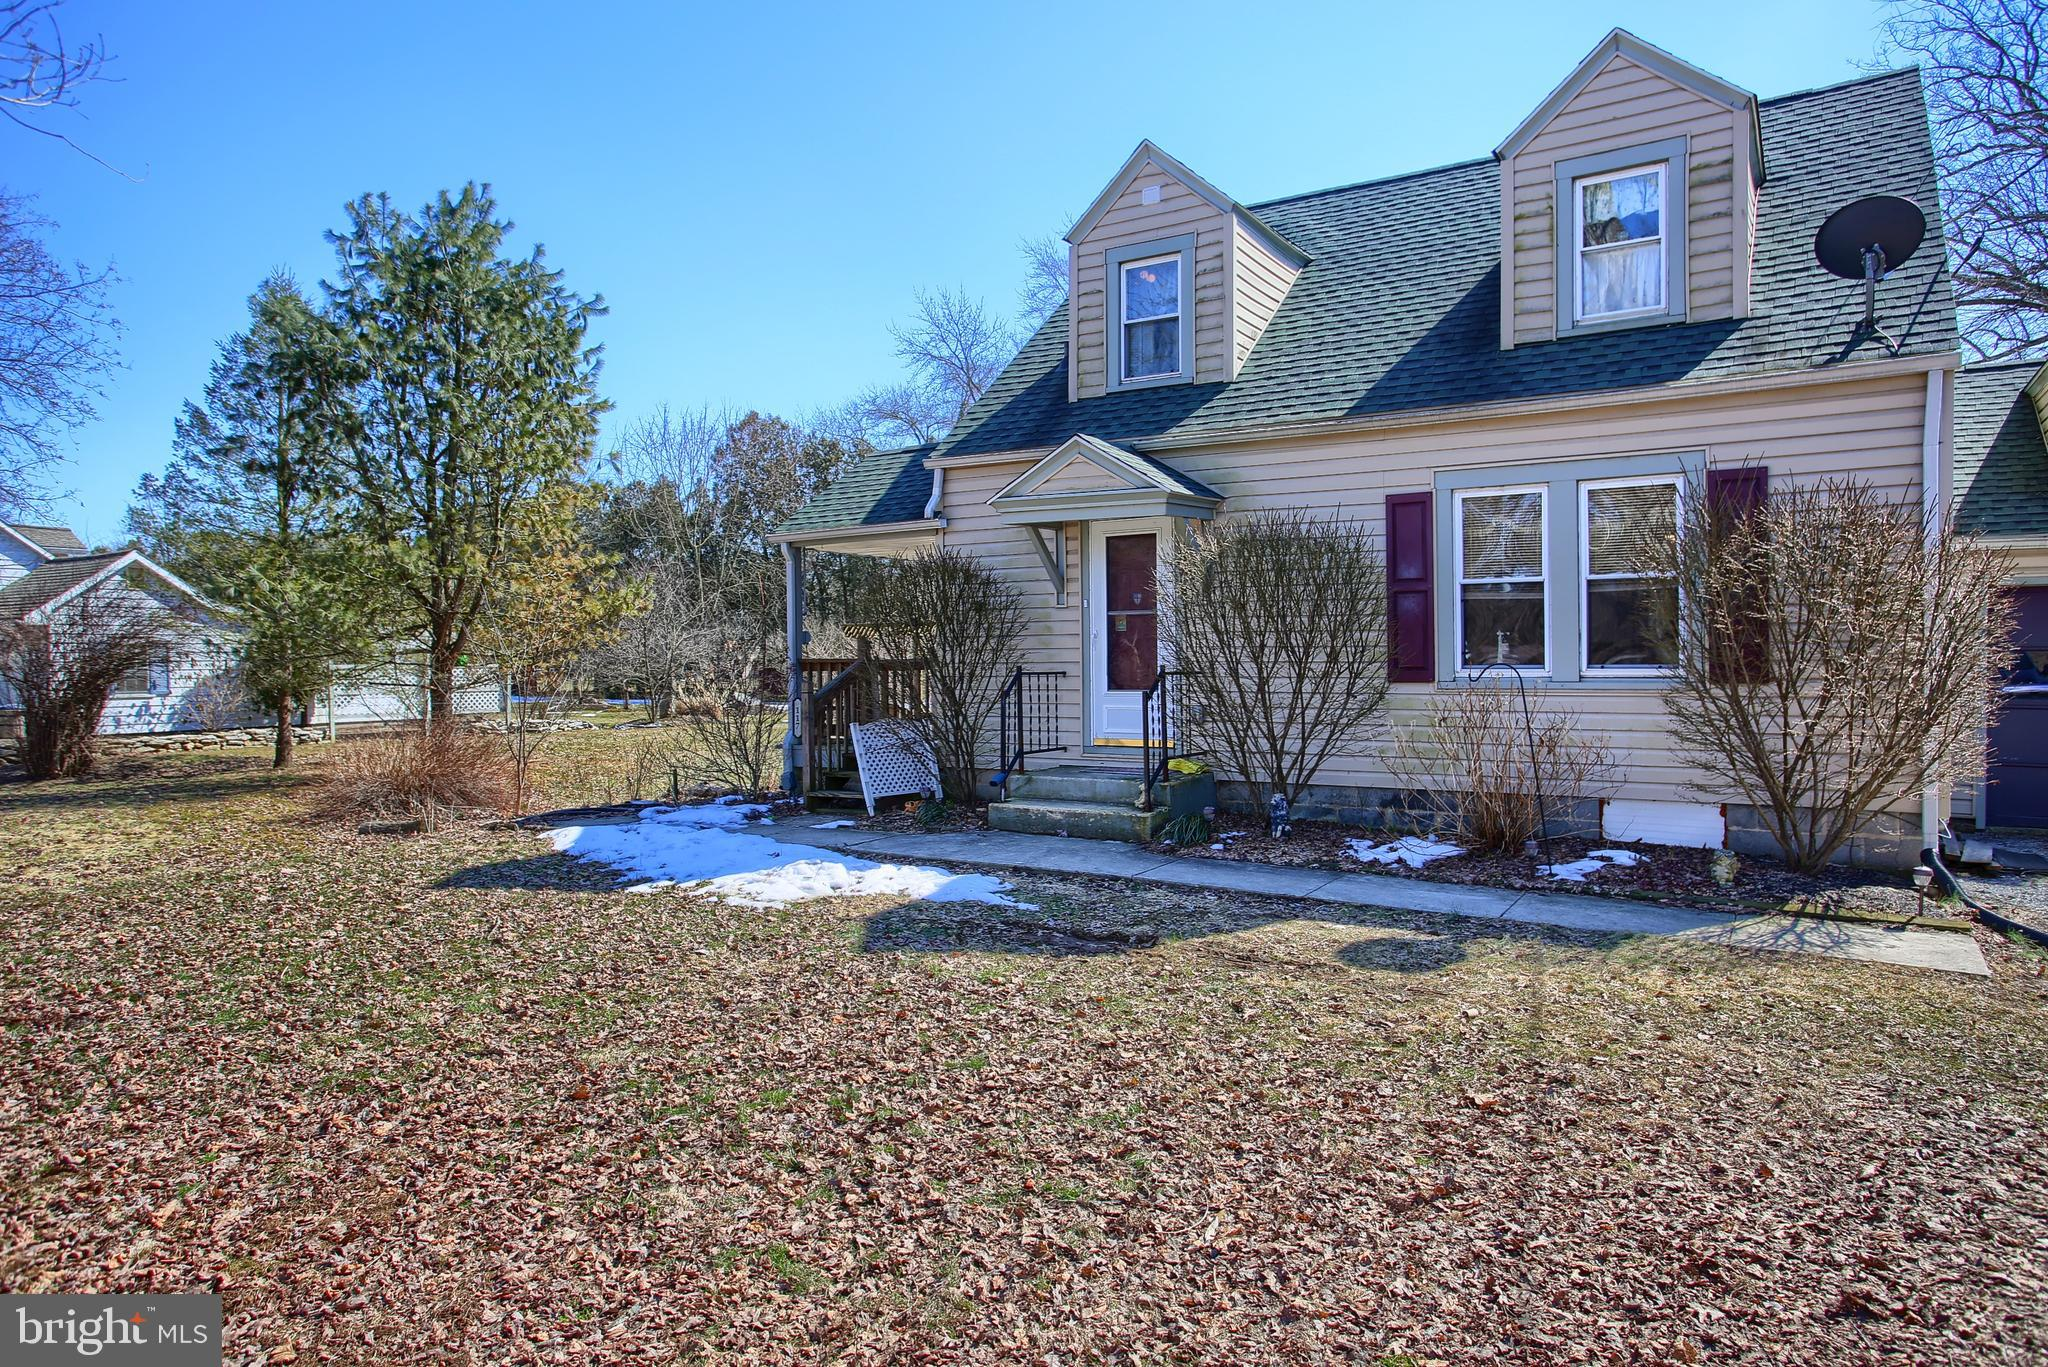 117 PINE ROAD, MOUNT HOLLY SPRINGS, PA 17065